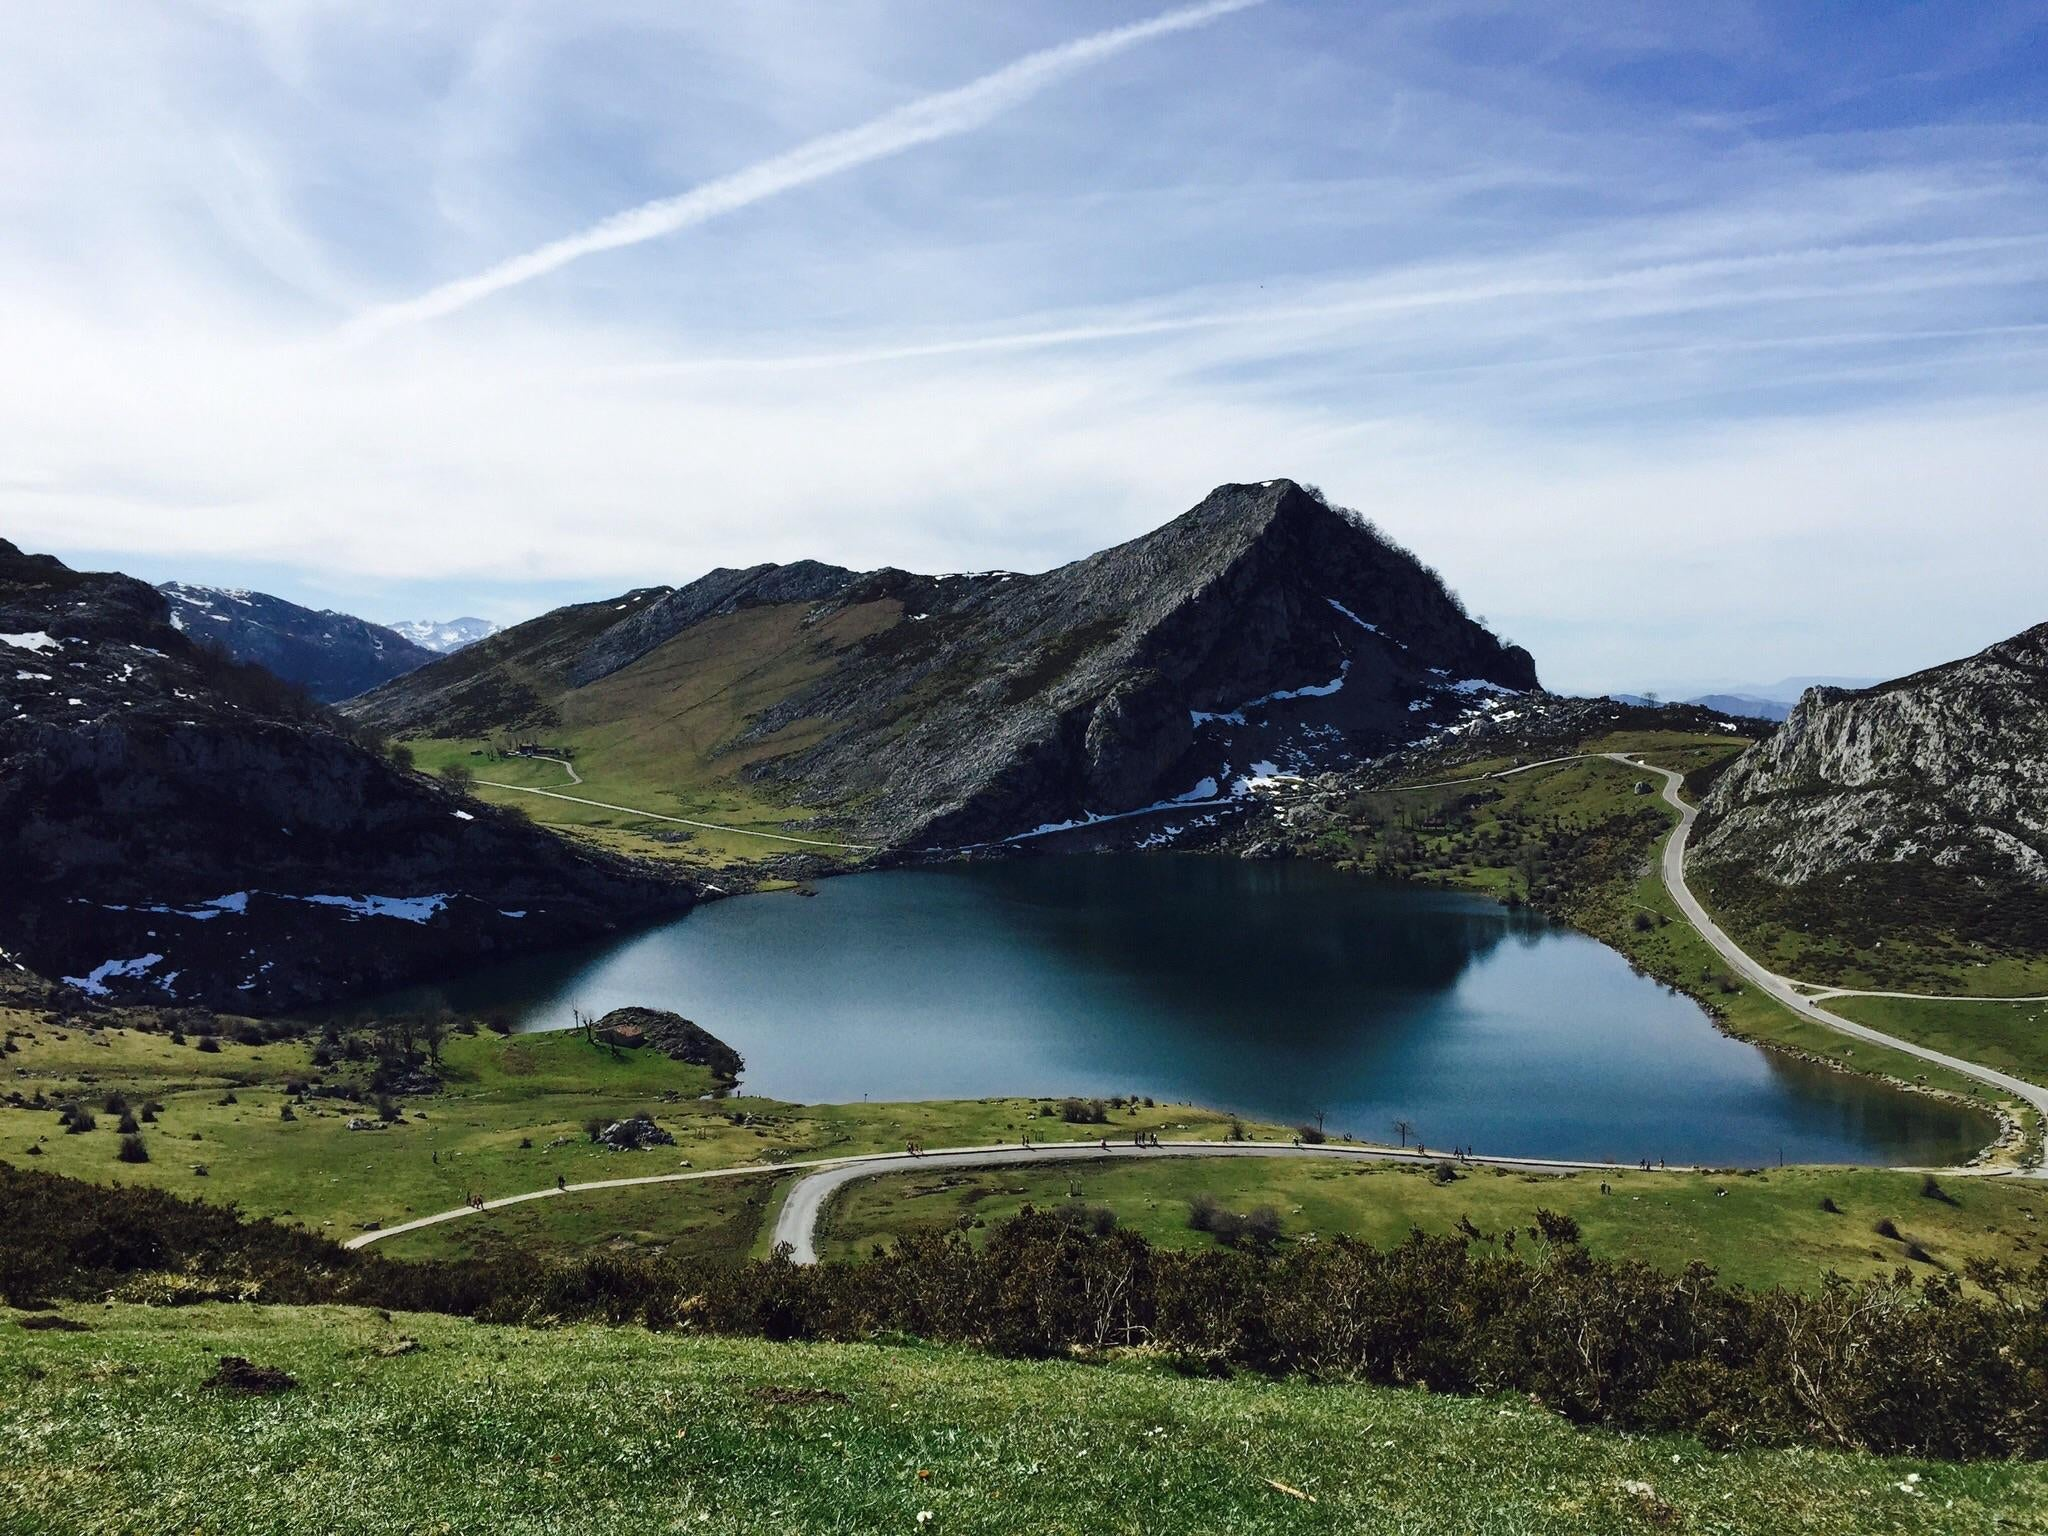 Mount Scenery in The Lakes of Covadonga - Enol and Ercina lakes